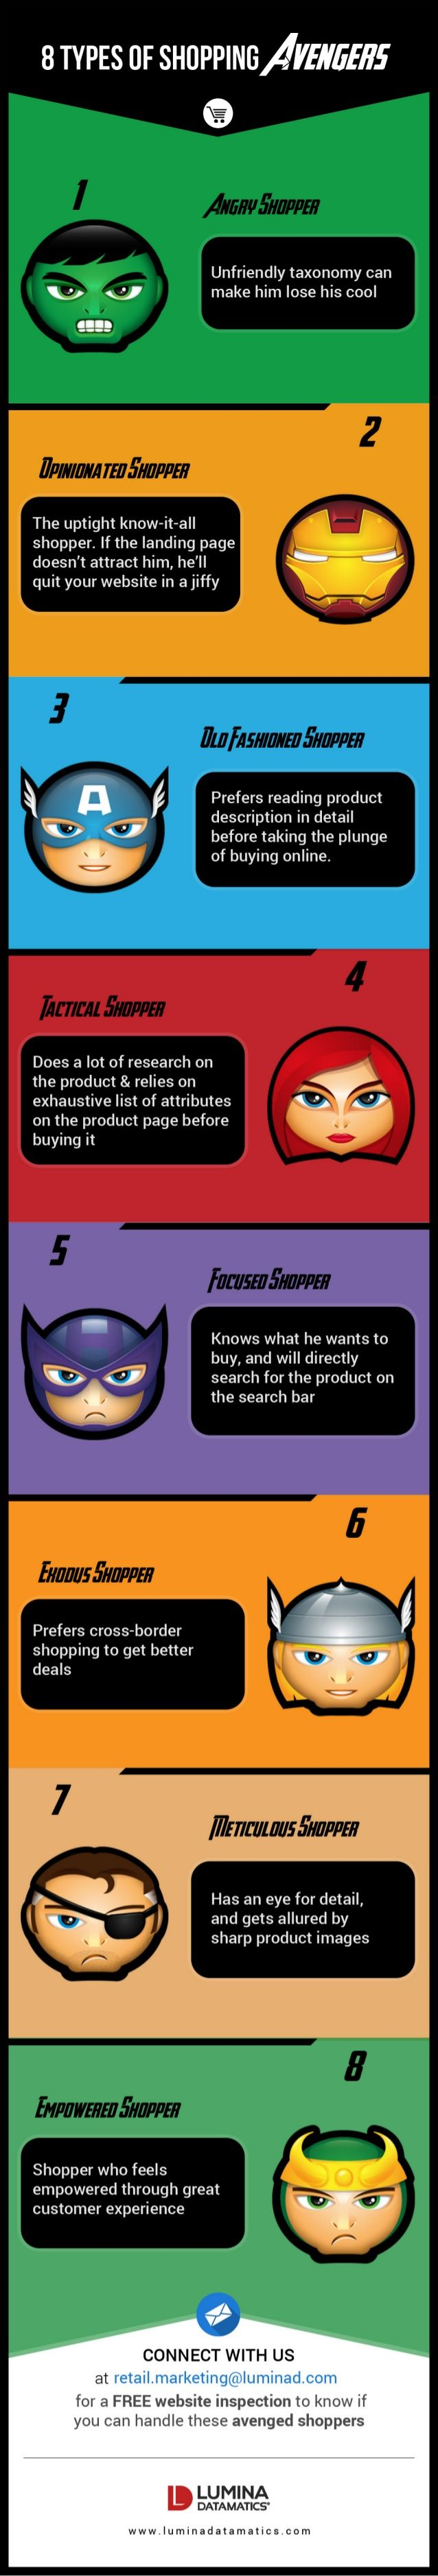 Just the way the superheroes are unique but have their own quirks, the eRetail customers are also very unique. Their expectations, demands and their choices are unique in their own ways and understanding them better can help retailers give a better shopping experiences to customers.